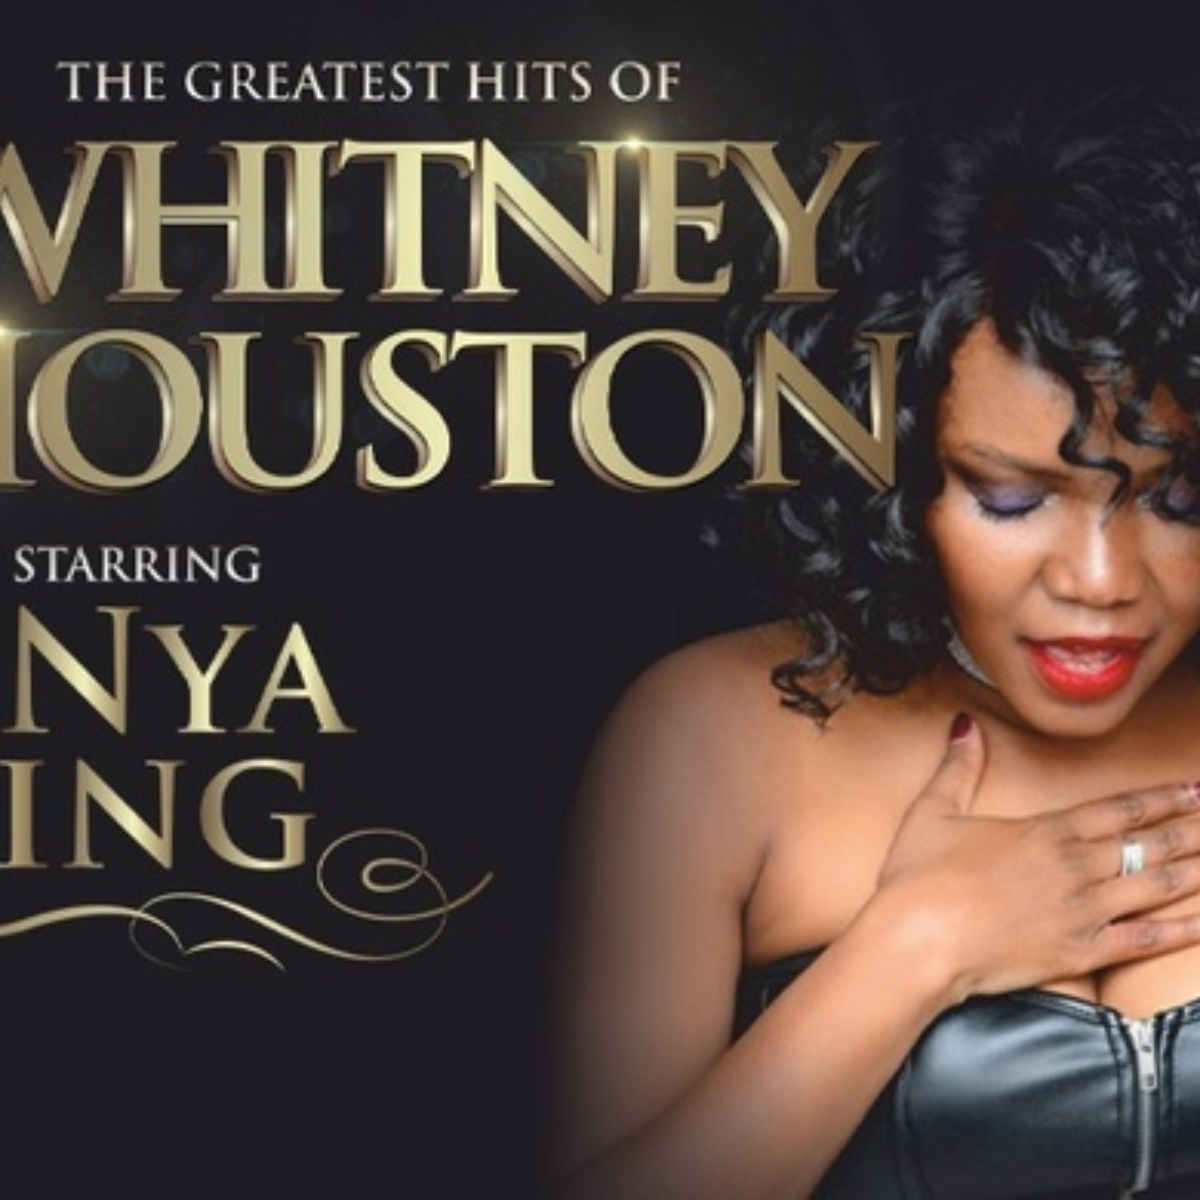 The Whitney Houston Experience - starring Nya King Images